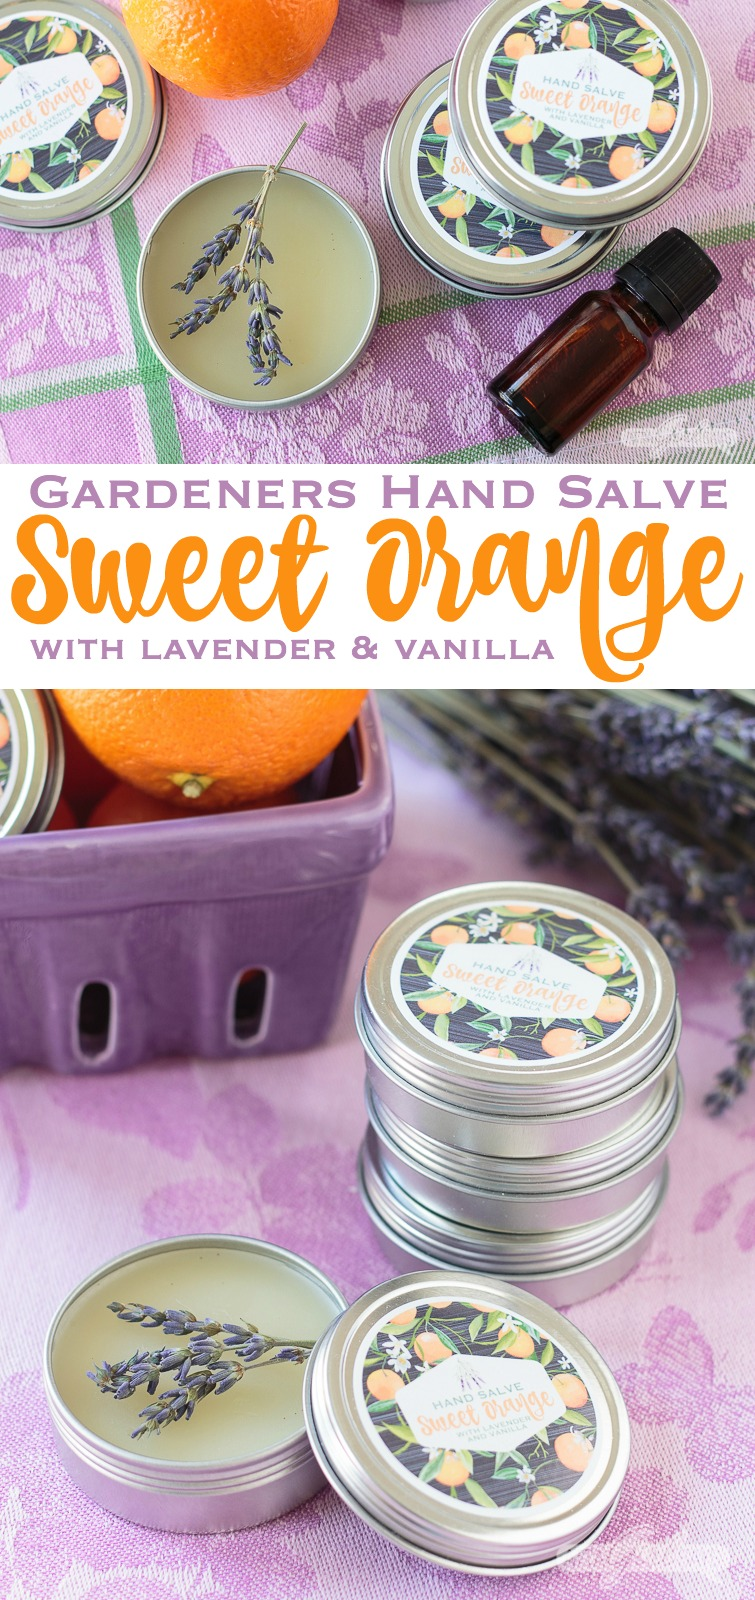 A collage photo titled Gardeners Hand Salve Sweet Orange with Lavender and Vanilla. The photo shows tins of homemade gardeners hand salve in round tins. An essential oil bottle, an orange, some dried lavender and a purple towel are visible in the background of the photo.